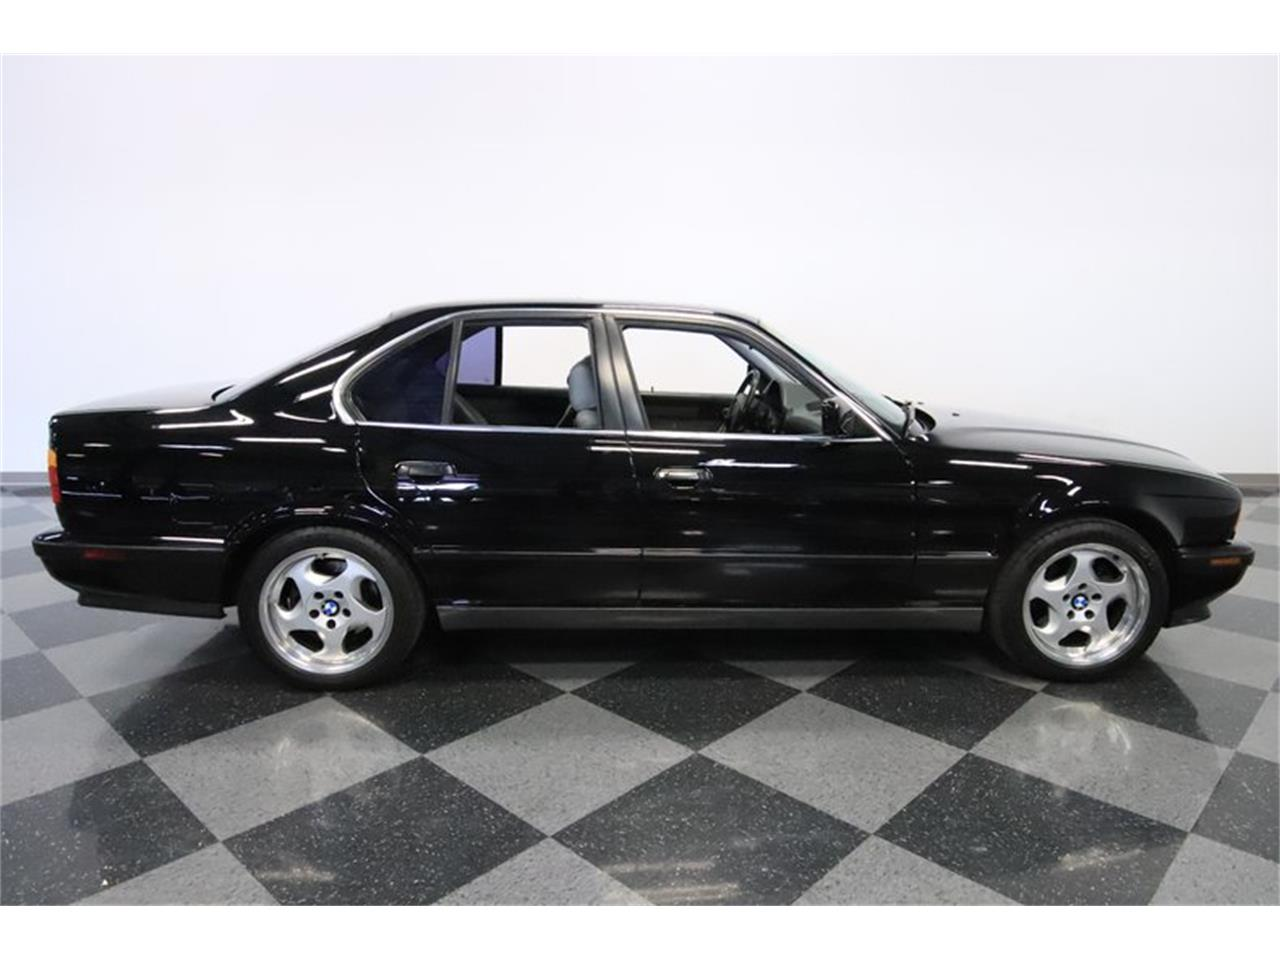 Large Picture of '91 BMW M5 located in Mesa Arizona Offered by Streetside Classics - Phoenix - PUPZ